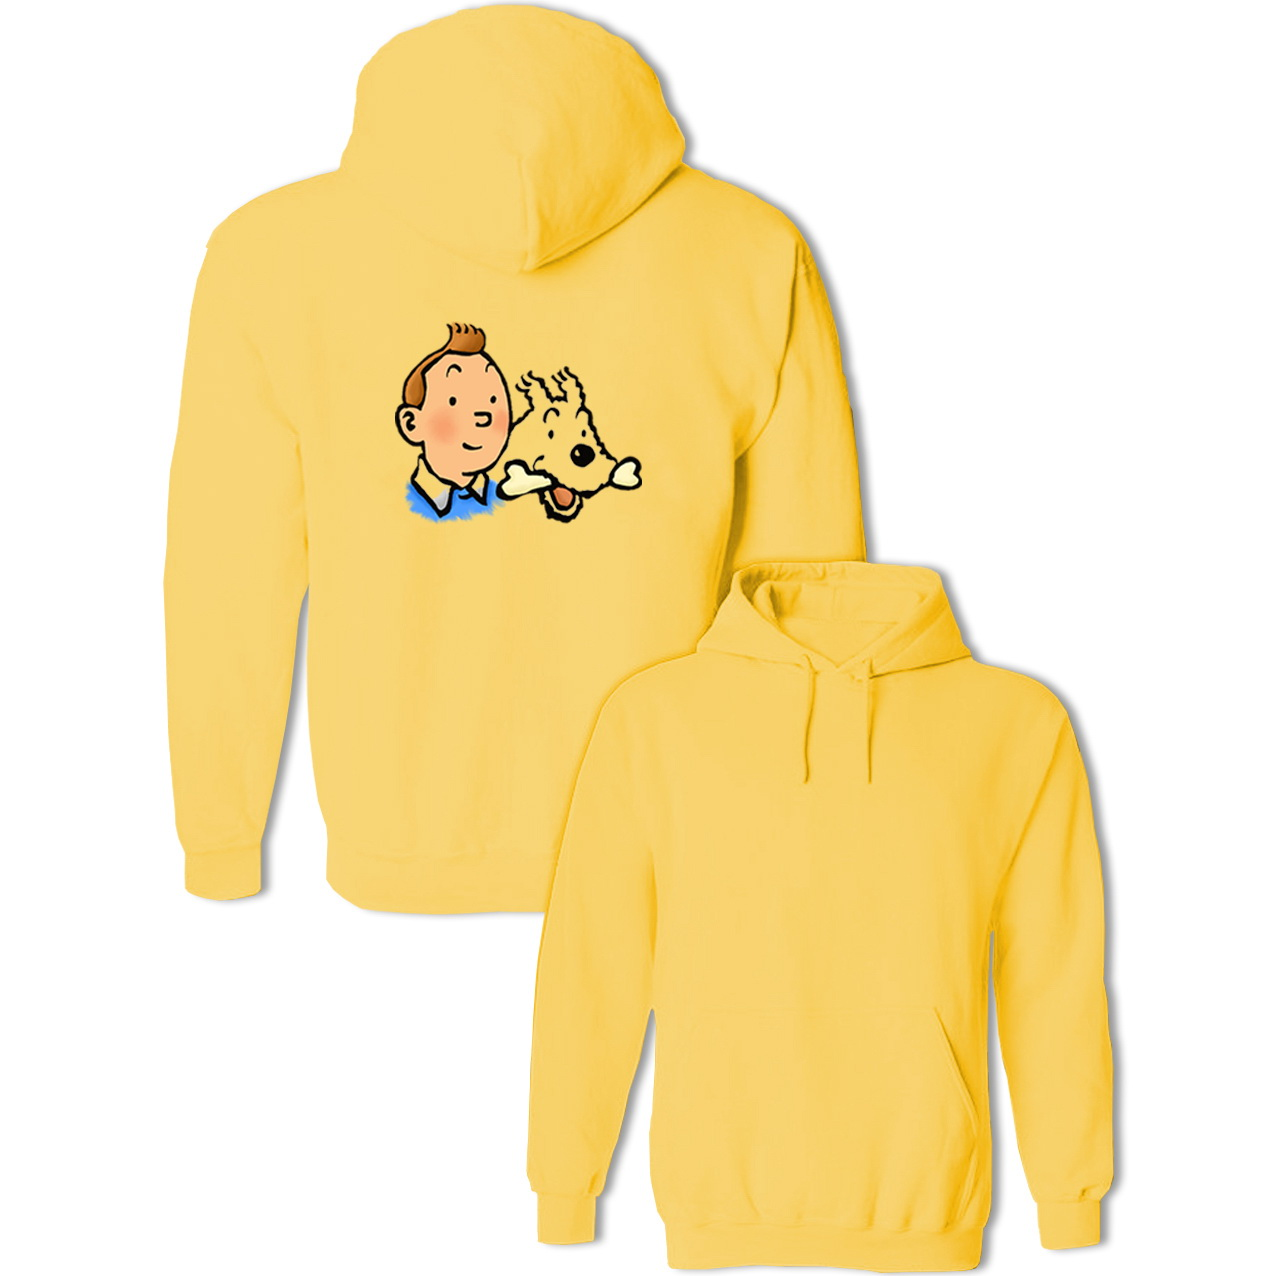 Funny Tintin And Snowy Interesting Origins Character Hoodies Women's Men's Sweatshirts Cotton Hoody Jackets Hip Hop Pullovers